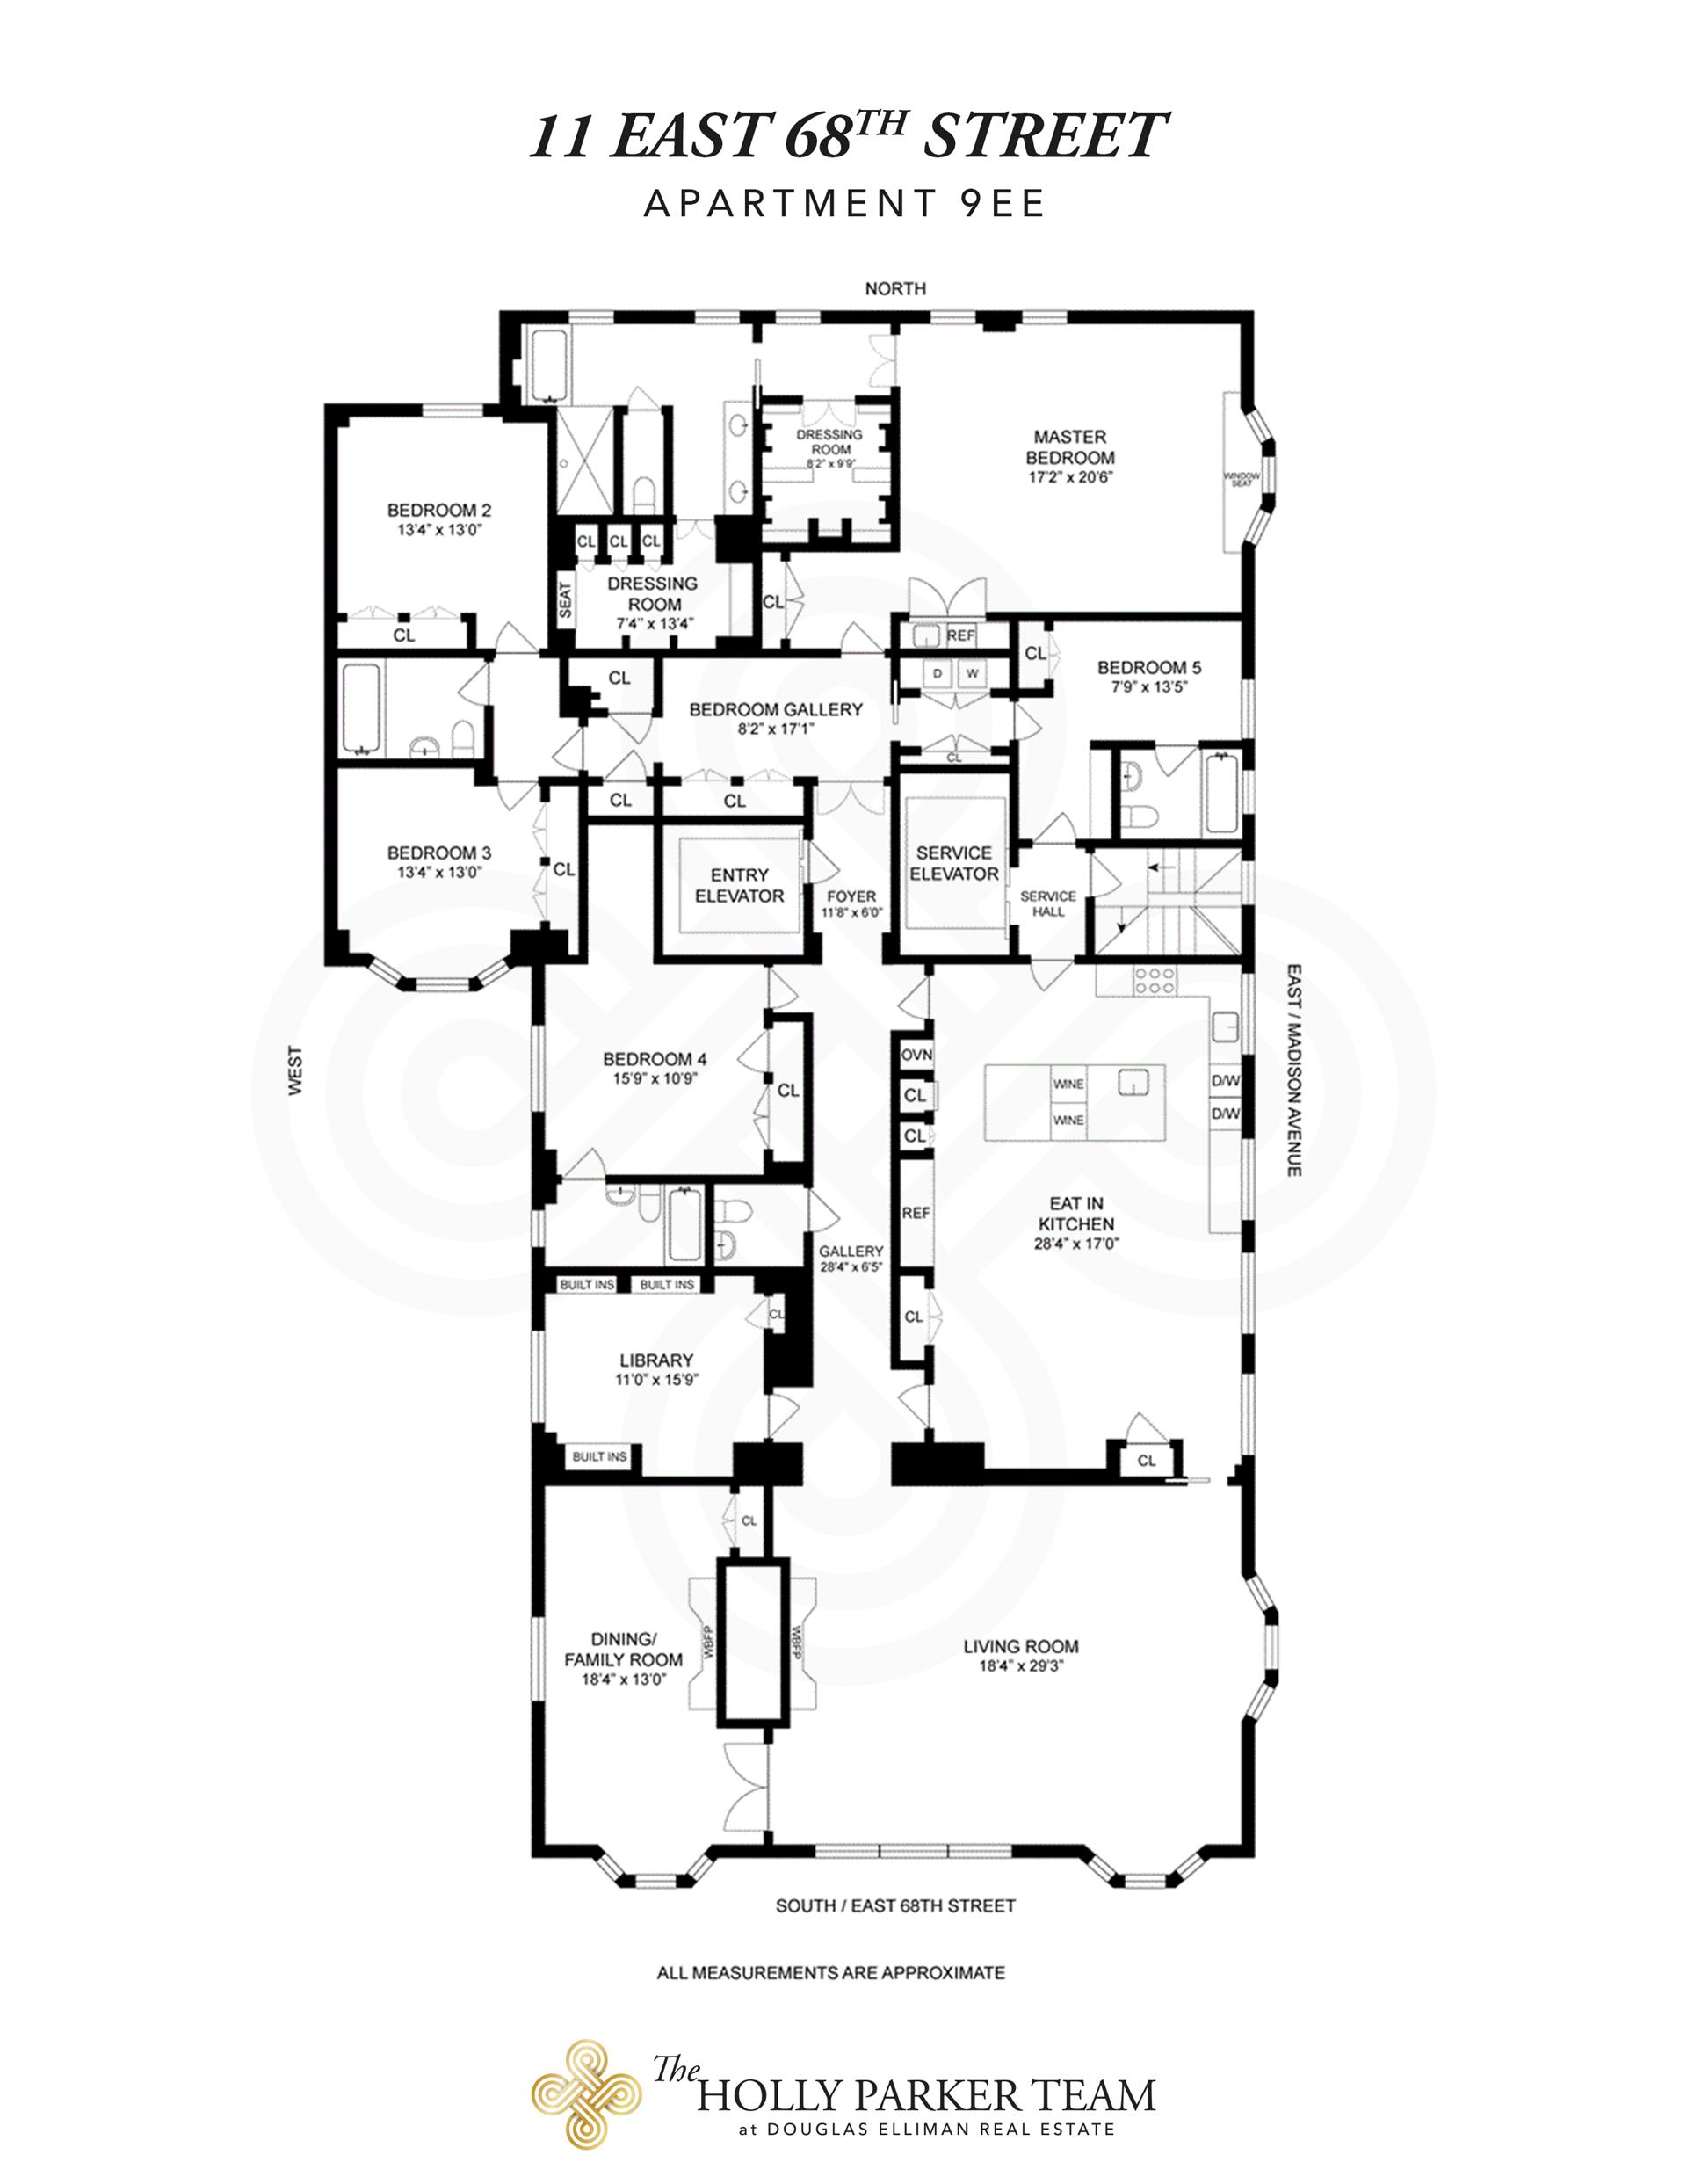 Floor plan of The Marquand, 11 East 68th St, 9EAST - Upper East Side, New York